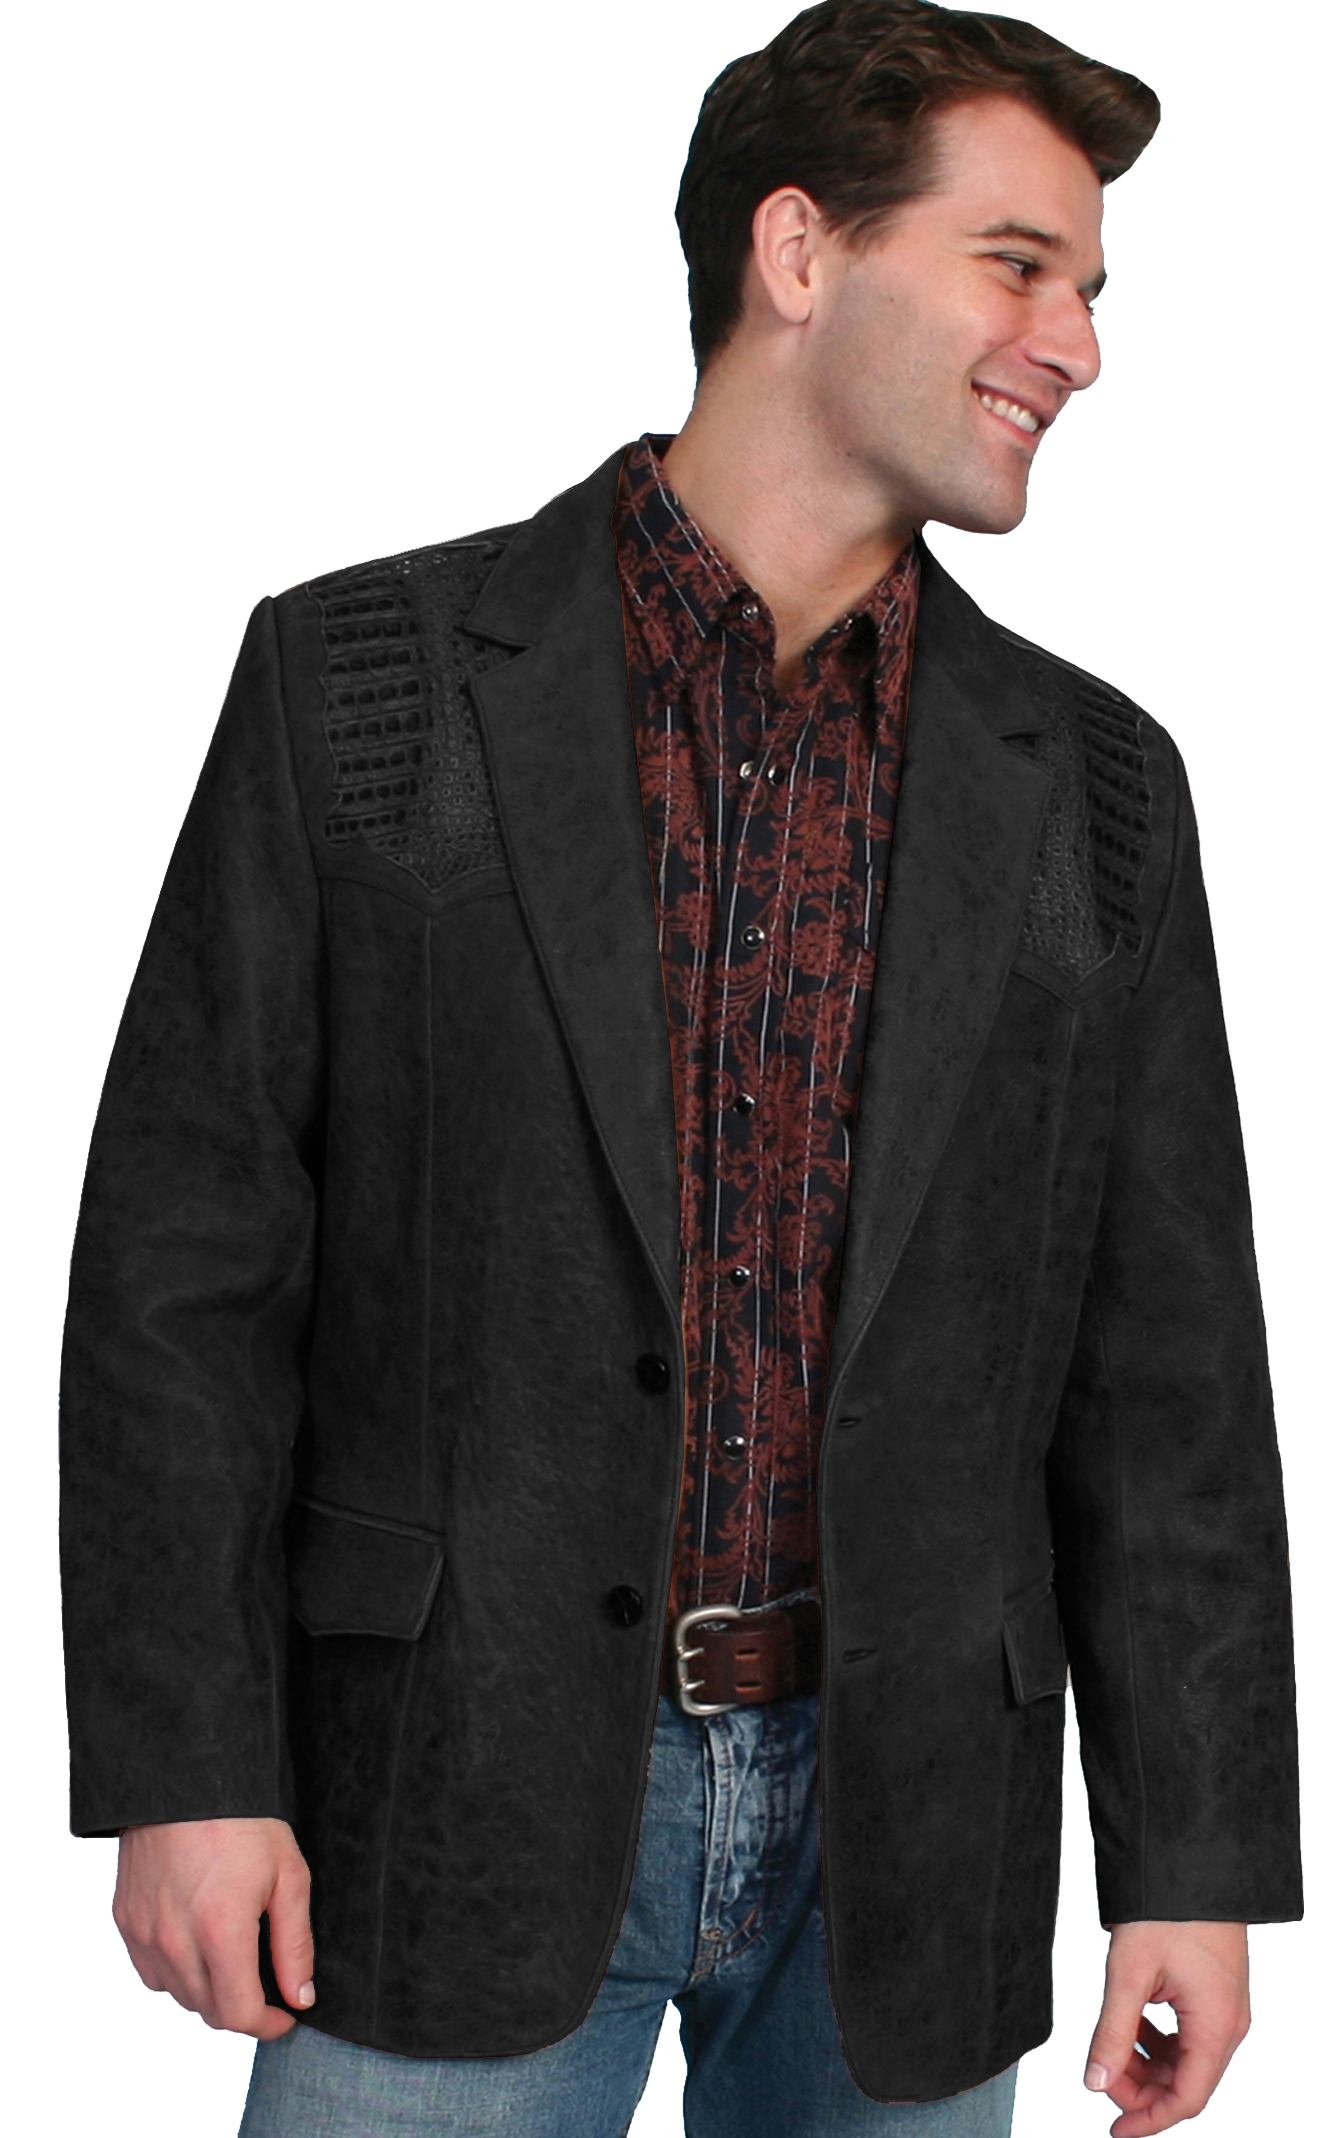 Mens Lambskin and Caiman Scully western blazer, scully coats, scully jackets, leather western jackets, western fringe jackets, fringe western jackets, daniel boone jacket, davey crocket jacket